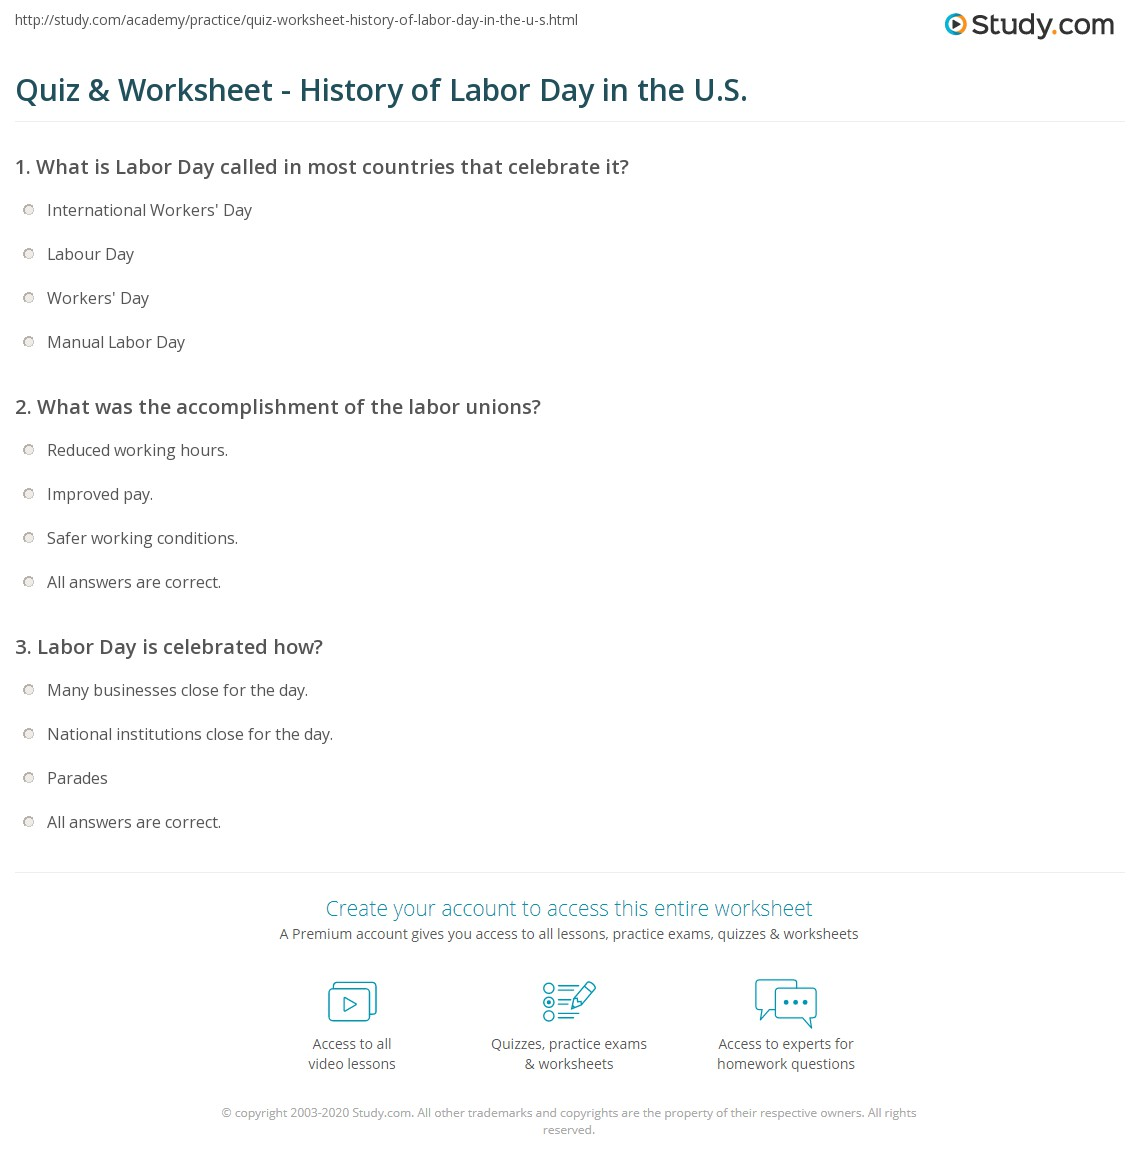 Worksheets Labor Day Worksheets quiz worksheet history of labor day in the u s study com print united states meaning worksheet